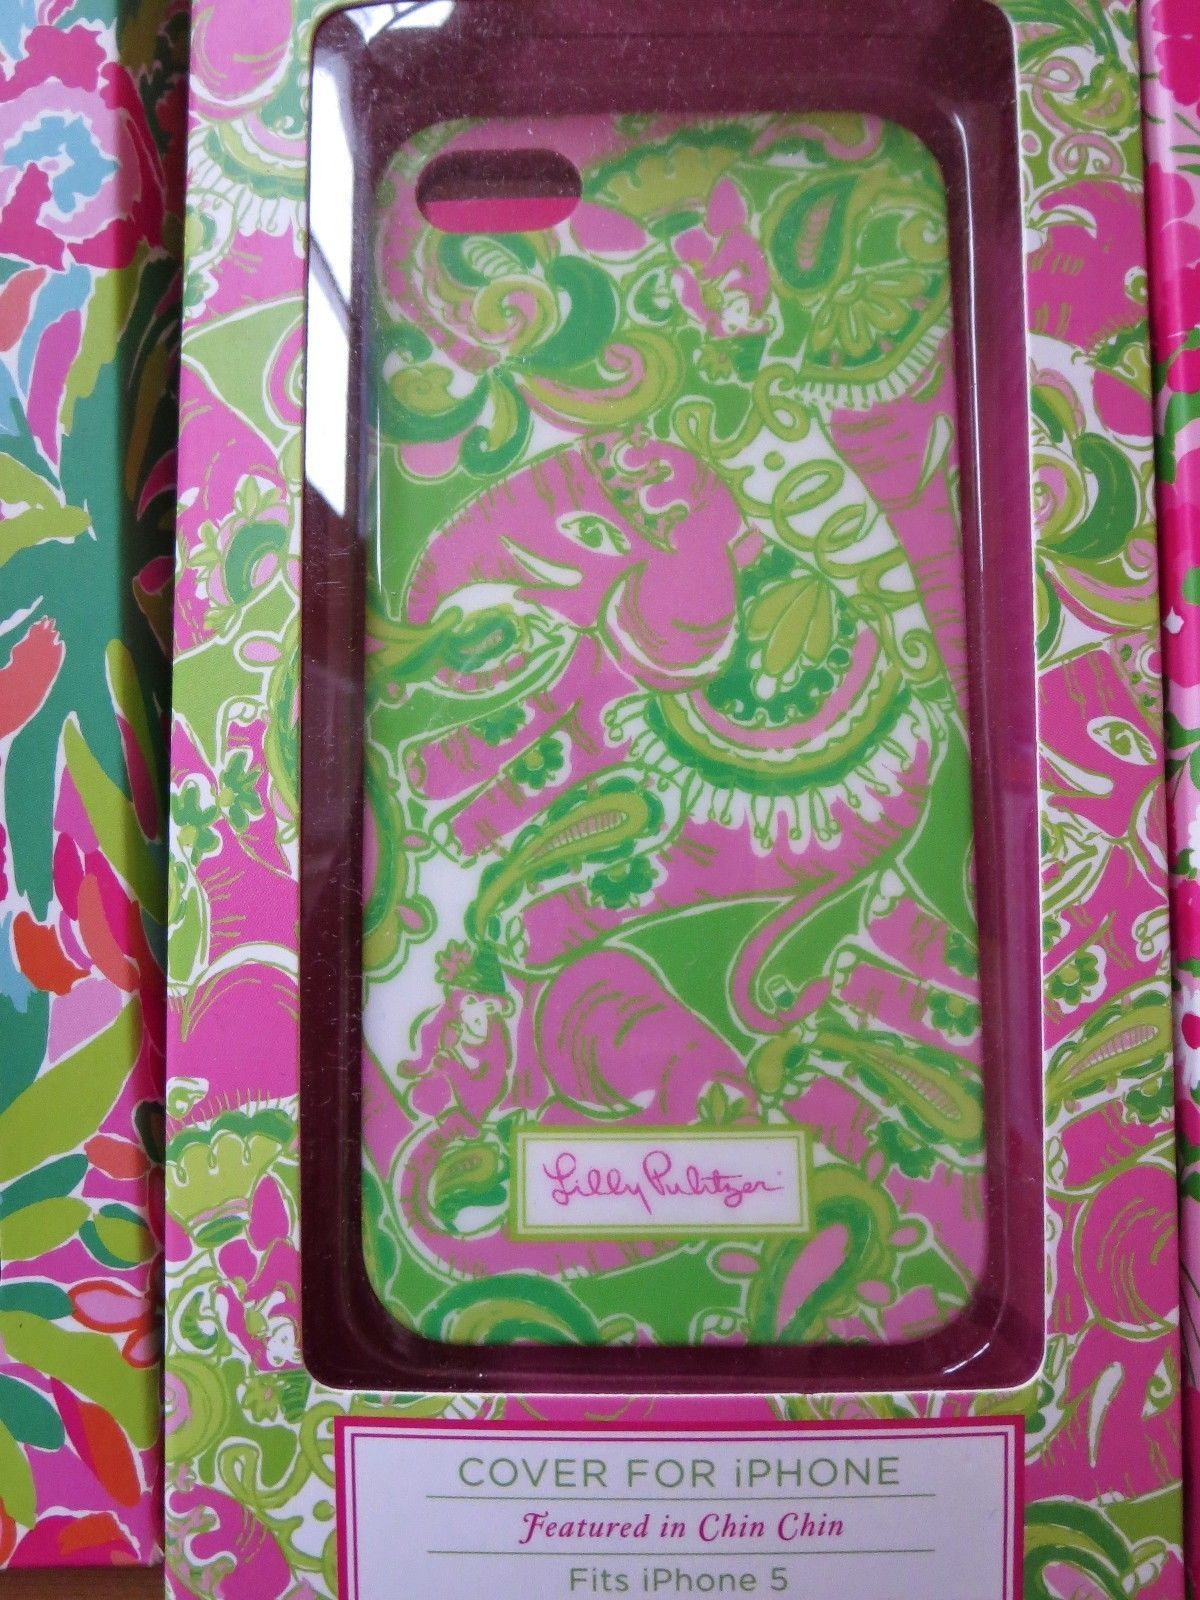 Enchanting Lilly Pulitzer Phone Case for Phone Accessories Ideas: Vera Bradley Phone Covers | Lilly Pulitzer Wristlet | Lilly Pulitzer Phone Case